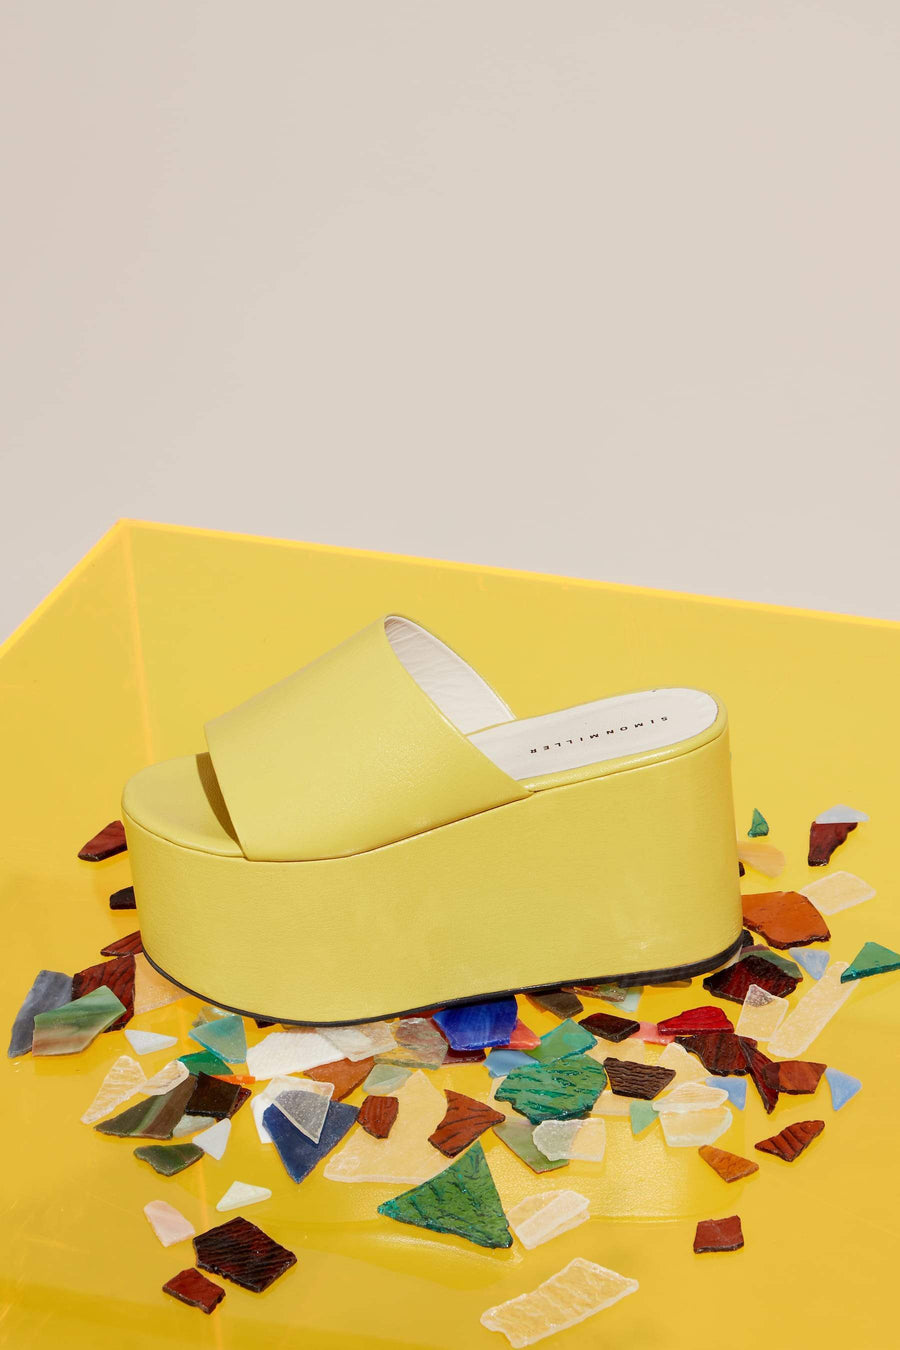 Blackout Platform in Sea Lemon